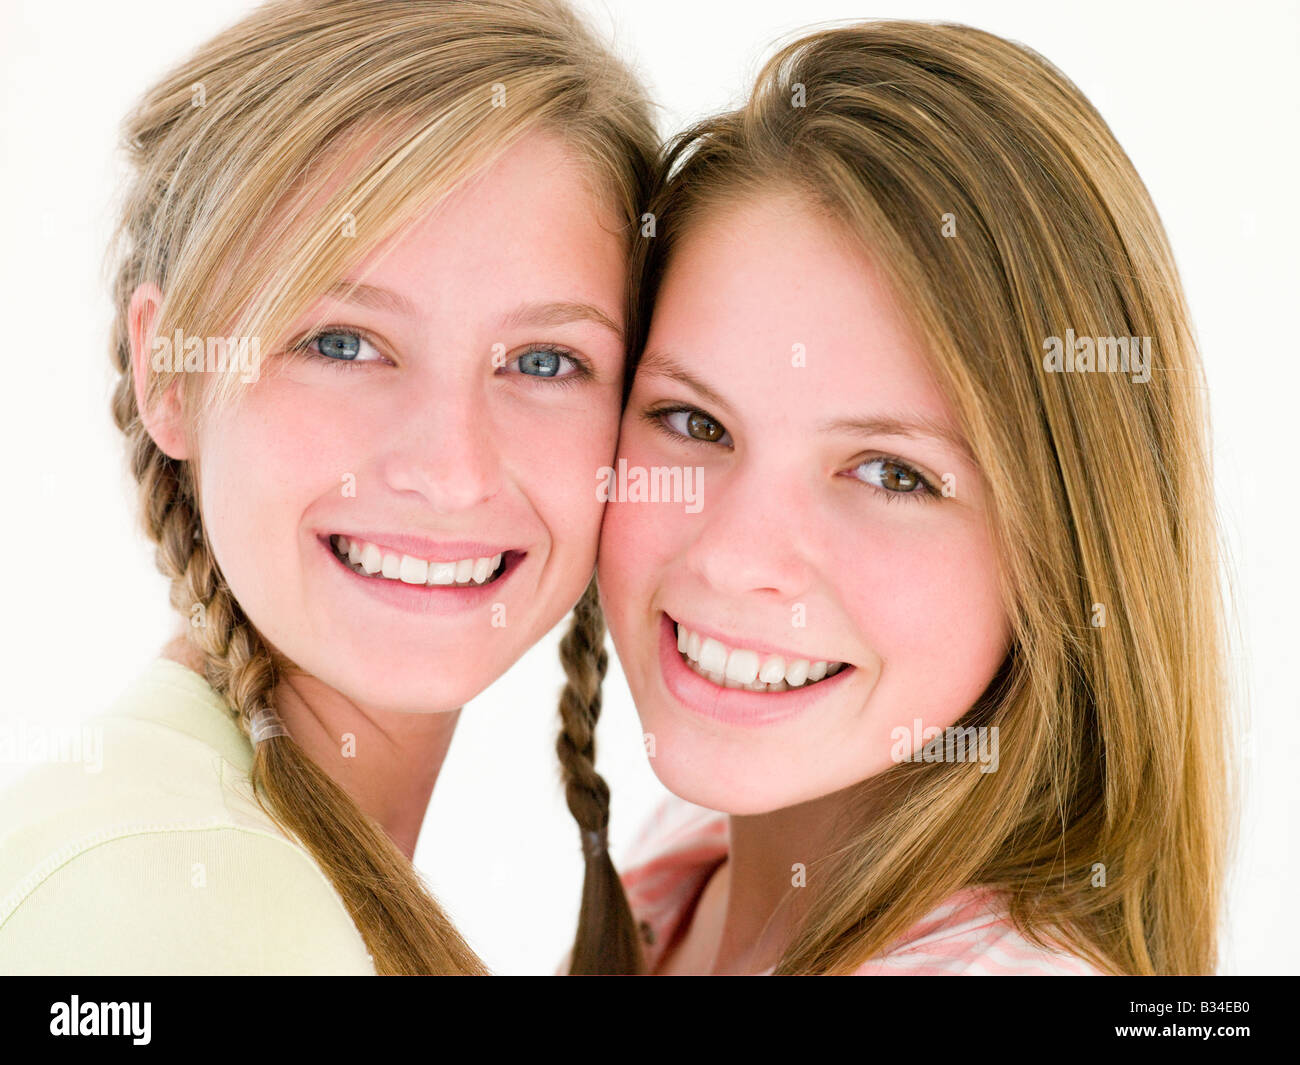 Deux girl friends smiling together Photo Stock